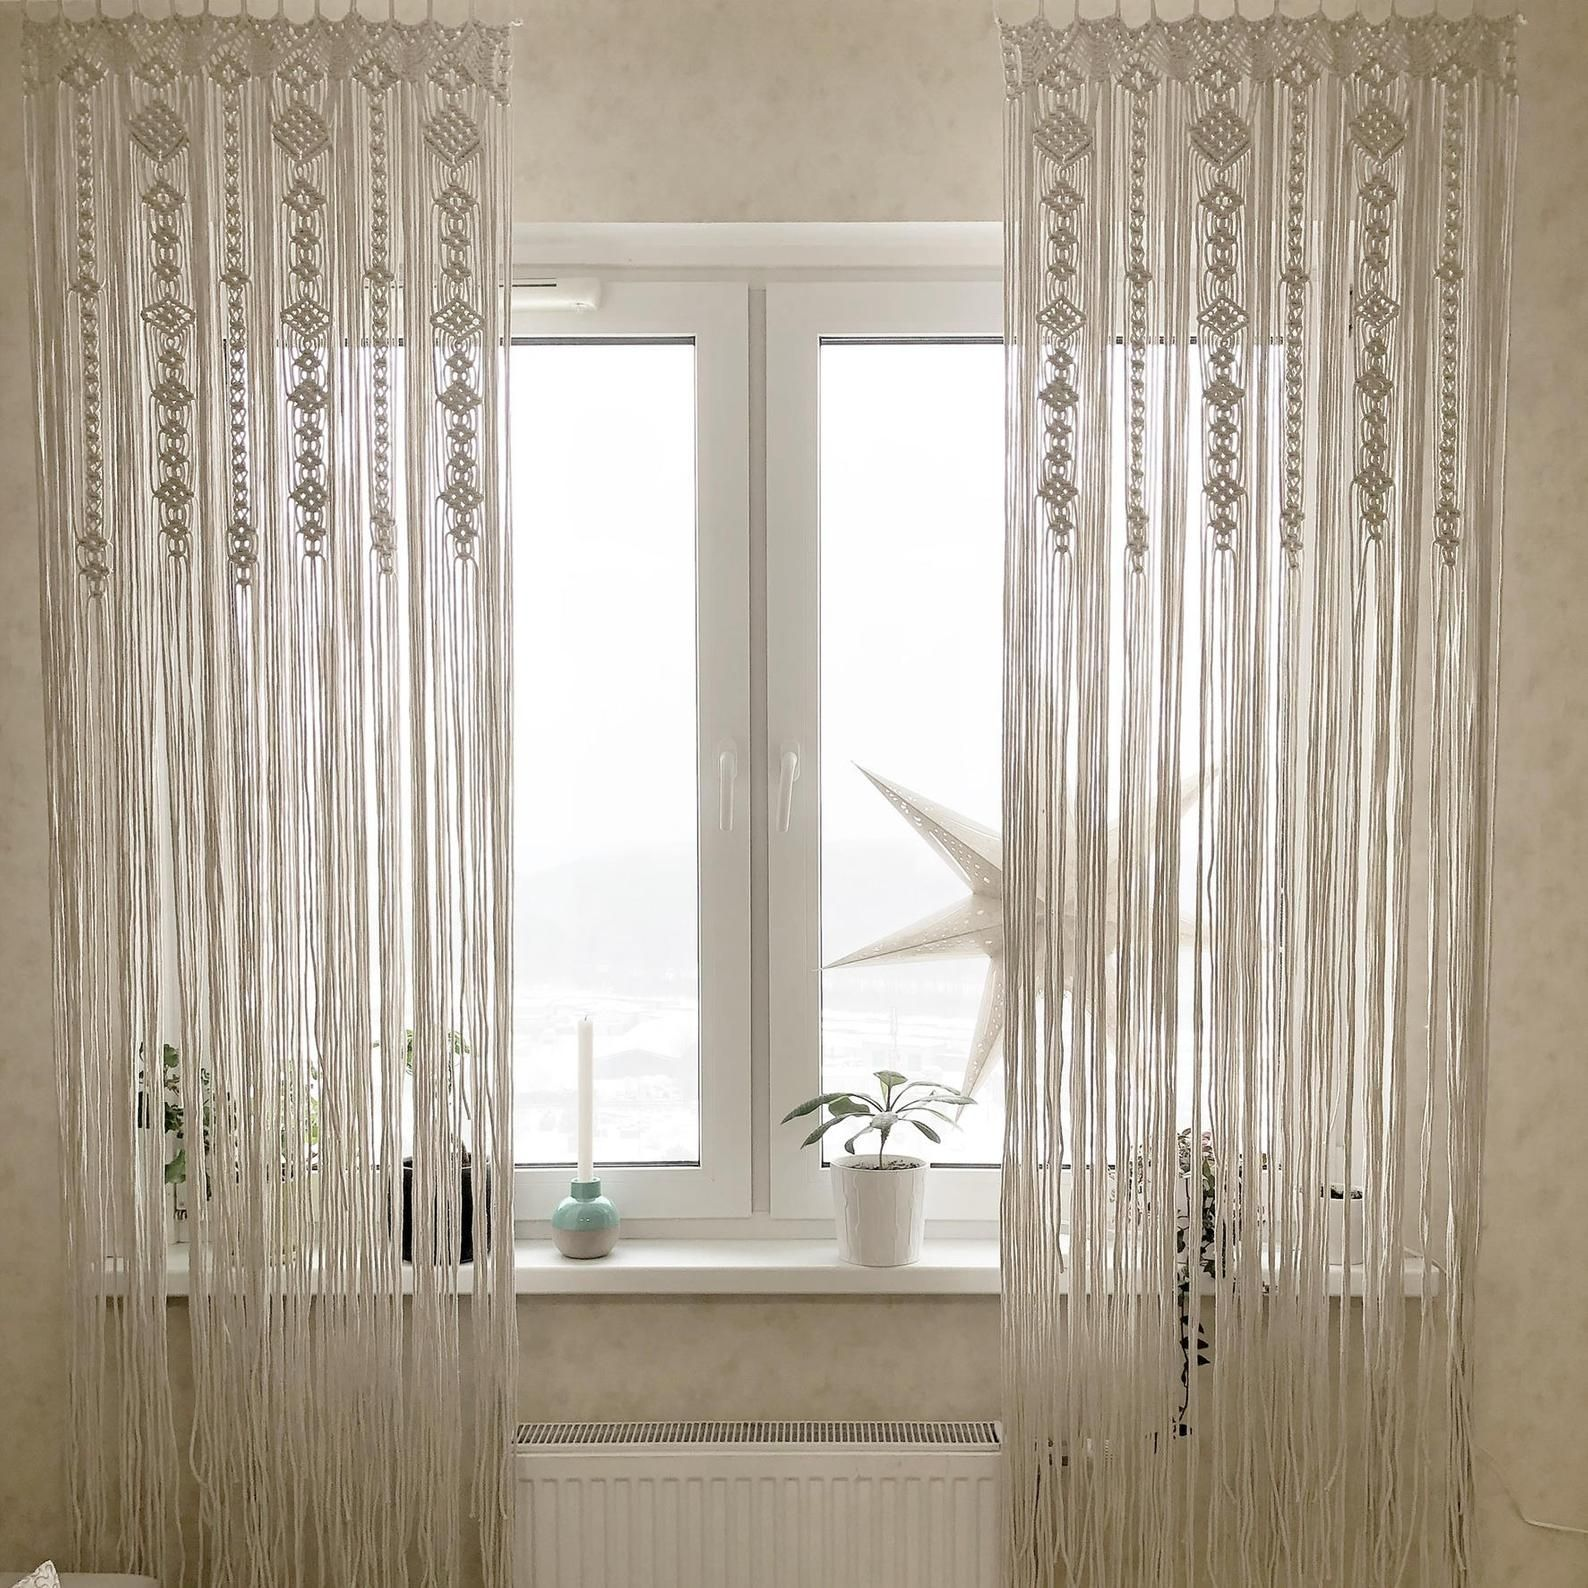 Large Macrame Door Curtains Of 2 Or 1 Panels Macrame Window Etsy Macrame Door Curtain Macrame Curtain Door Curtains